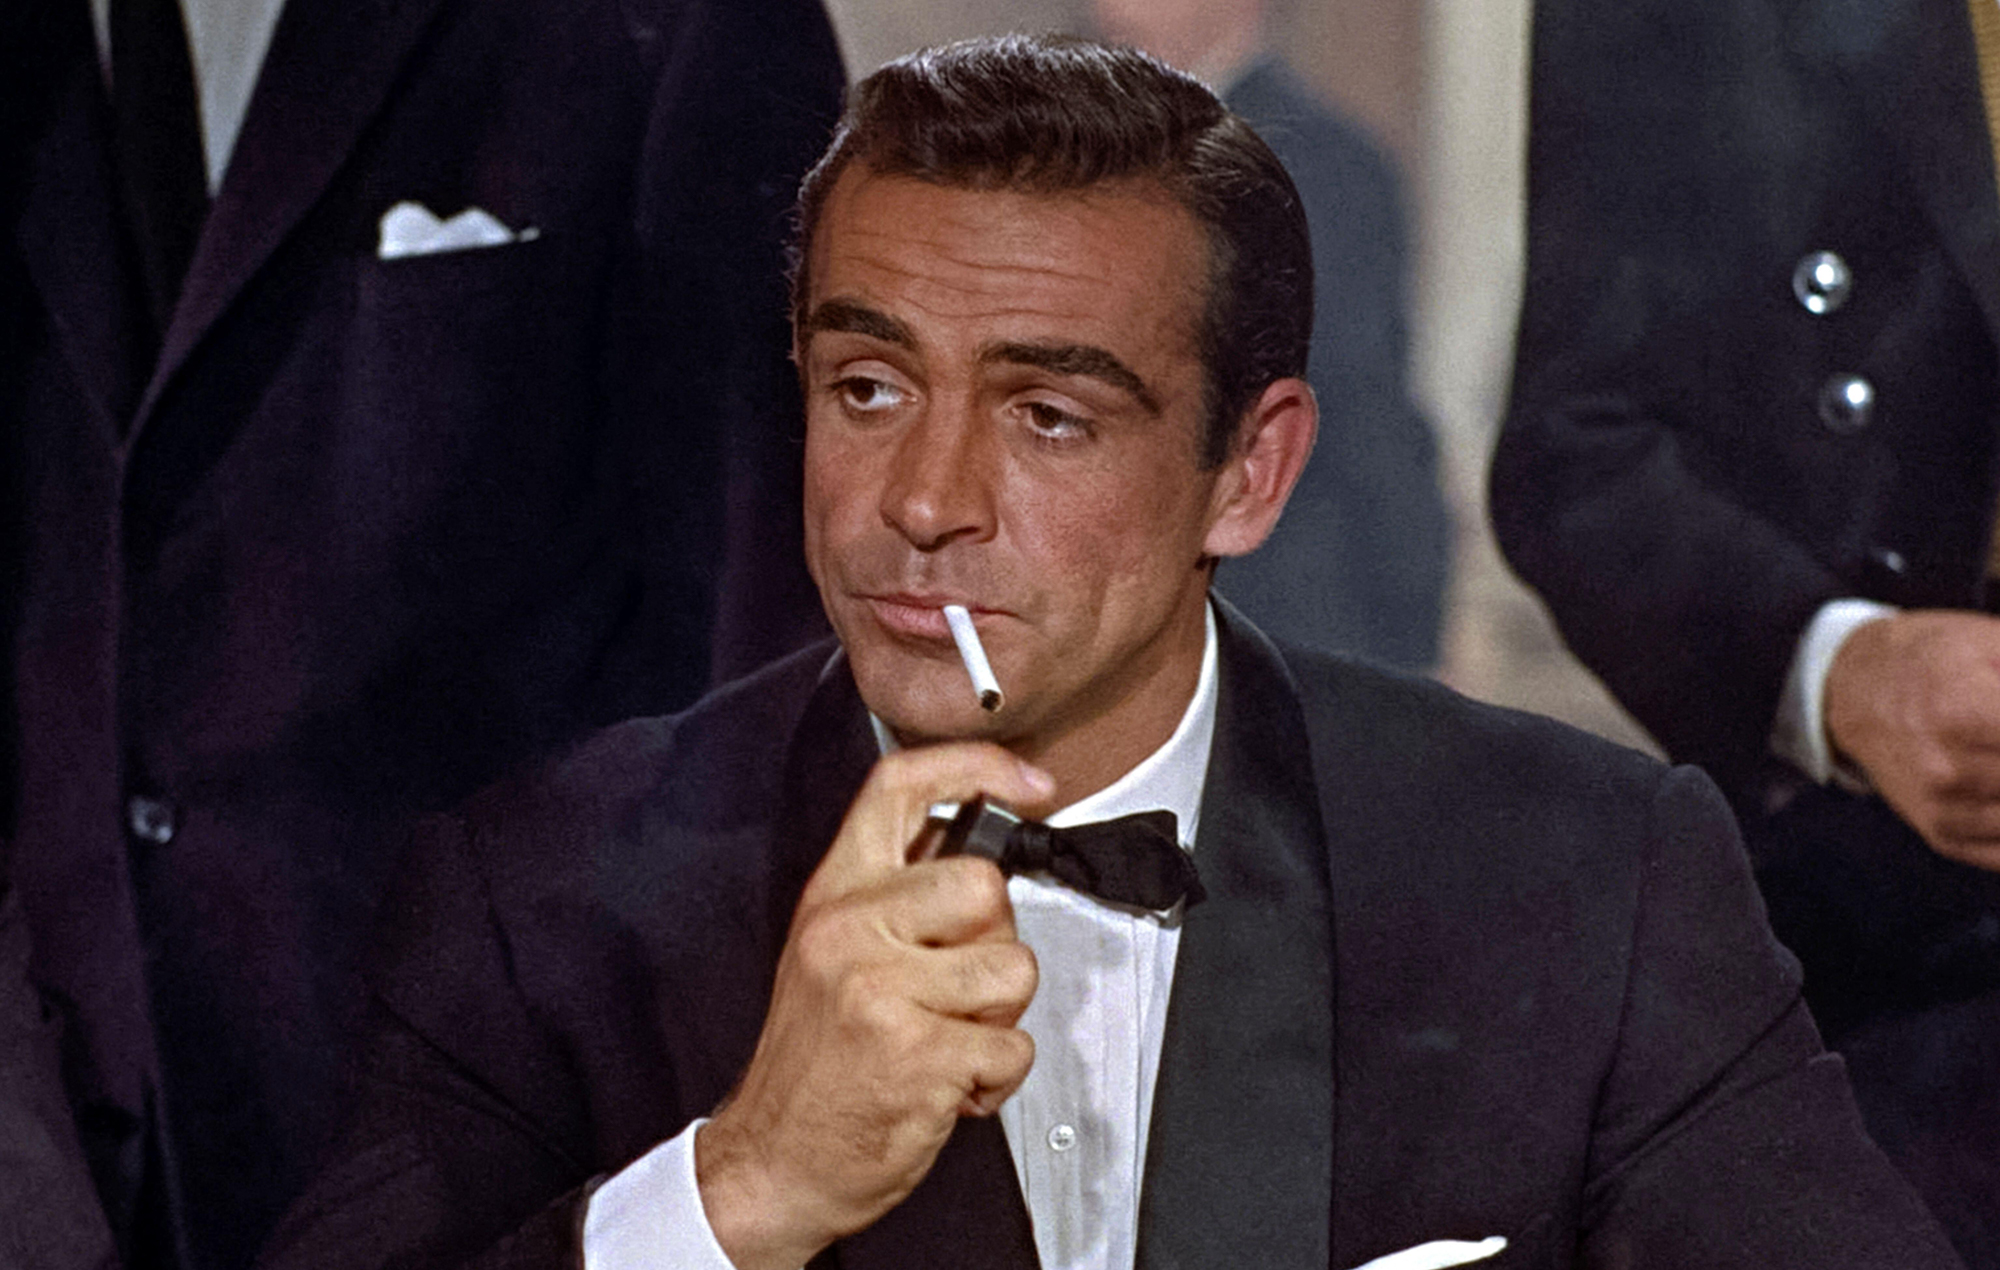 Bond actors Daniel Craig and Pierce Brosnan pay tribute to Sean Connery